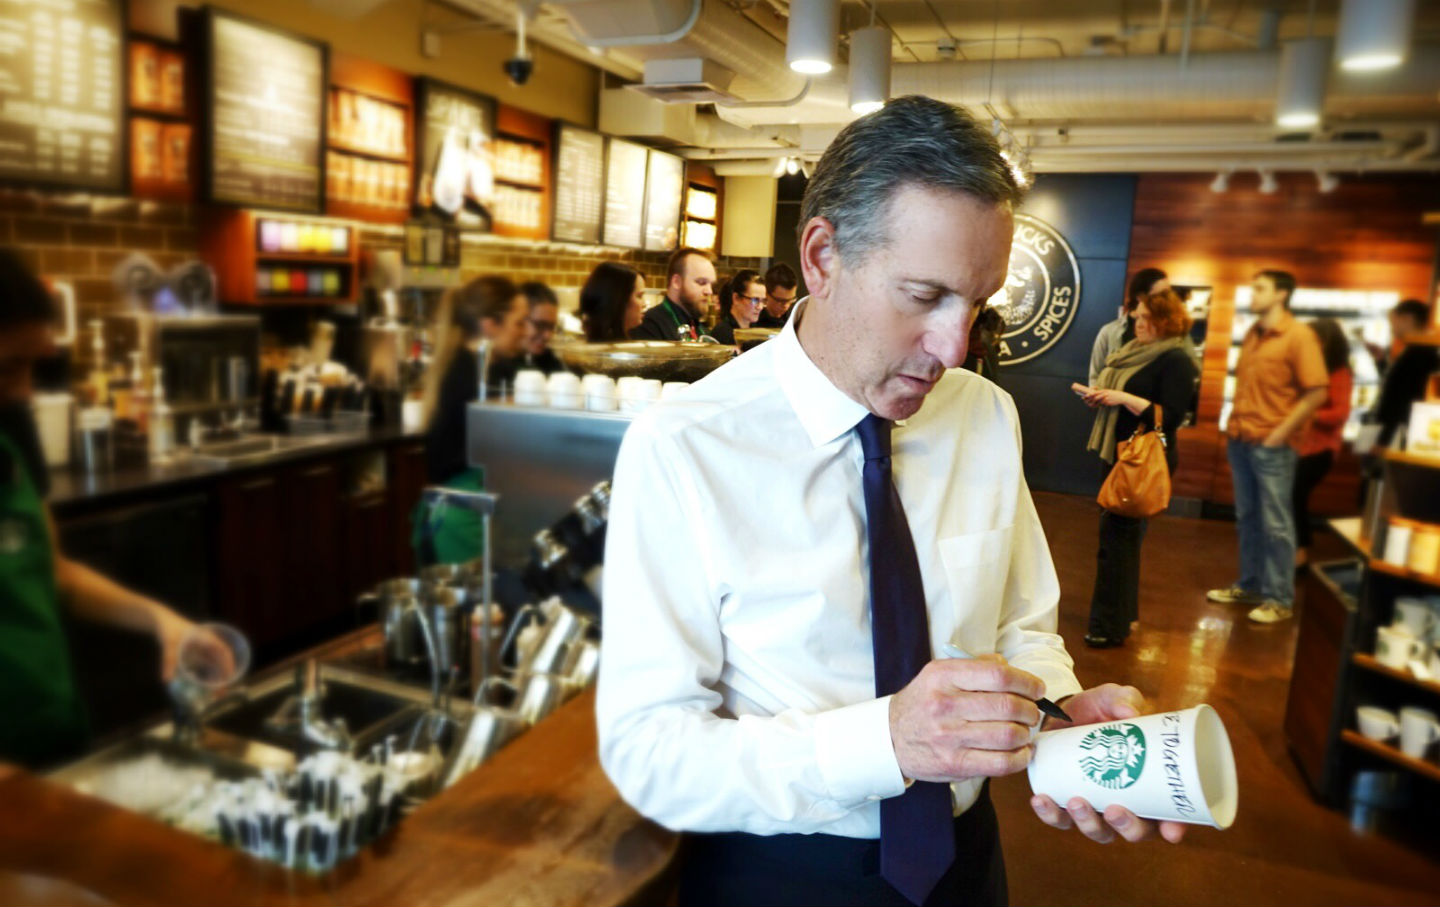 Howard-Schultz-of-Starbucks